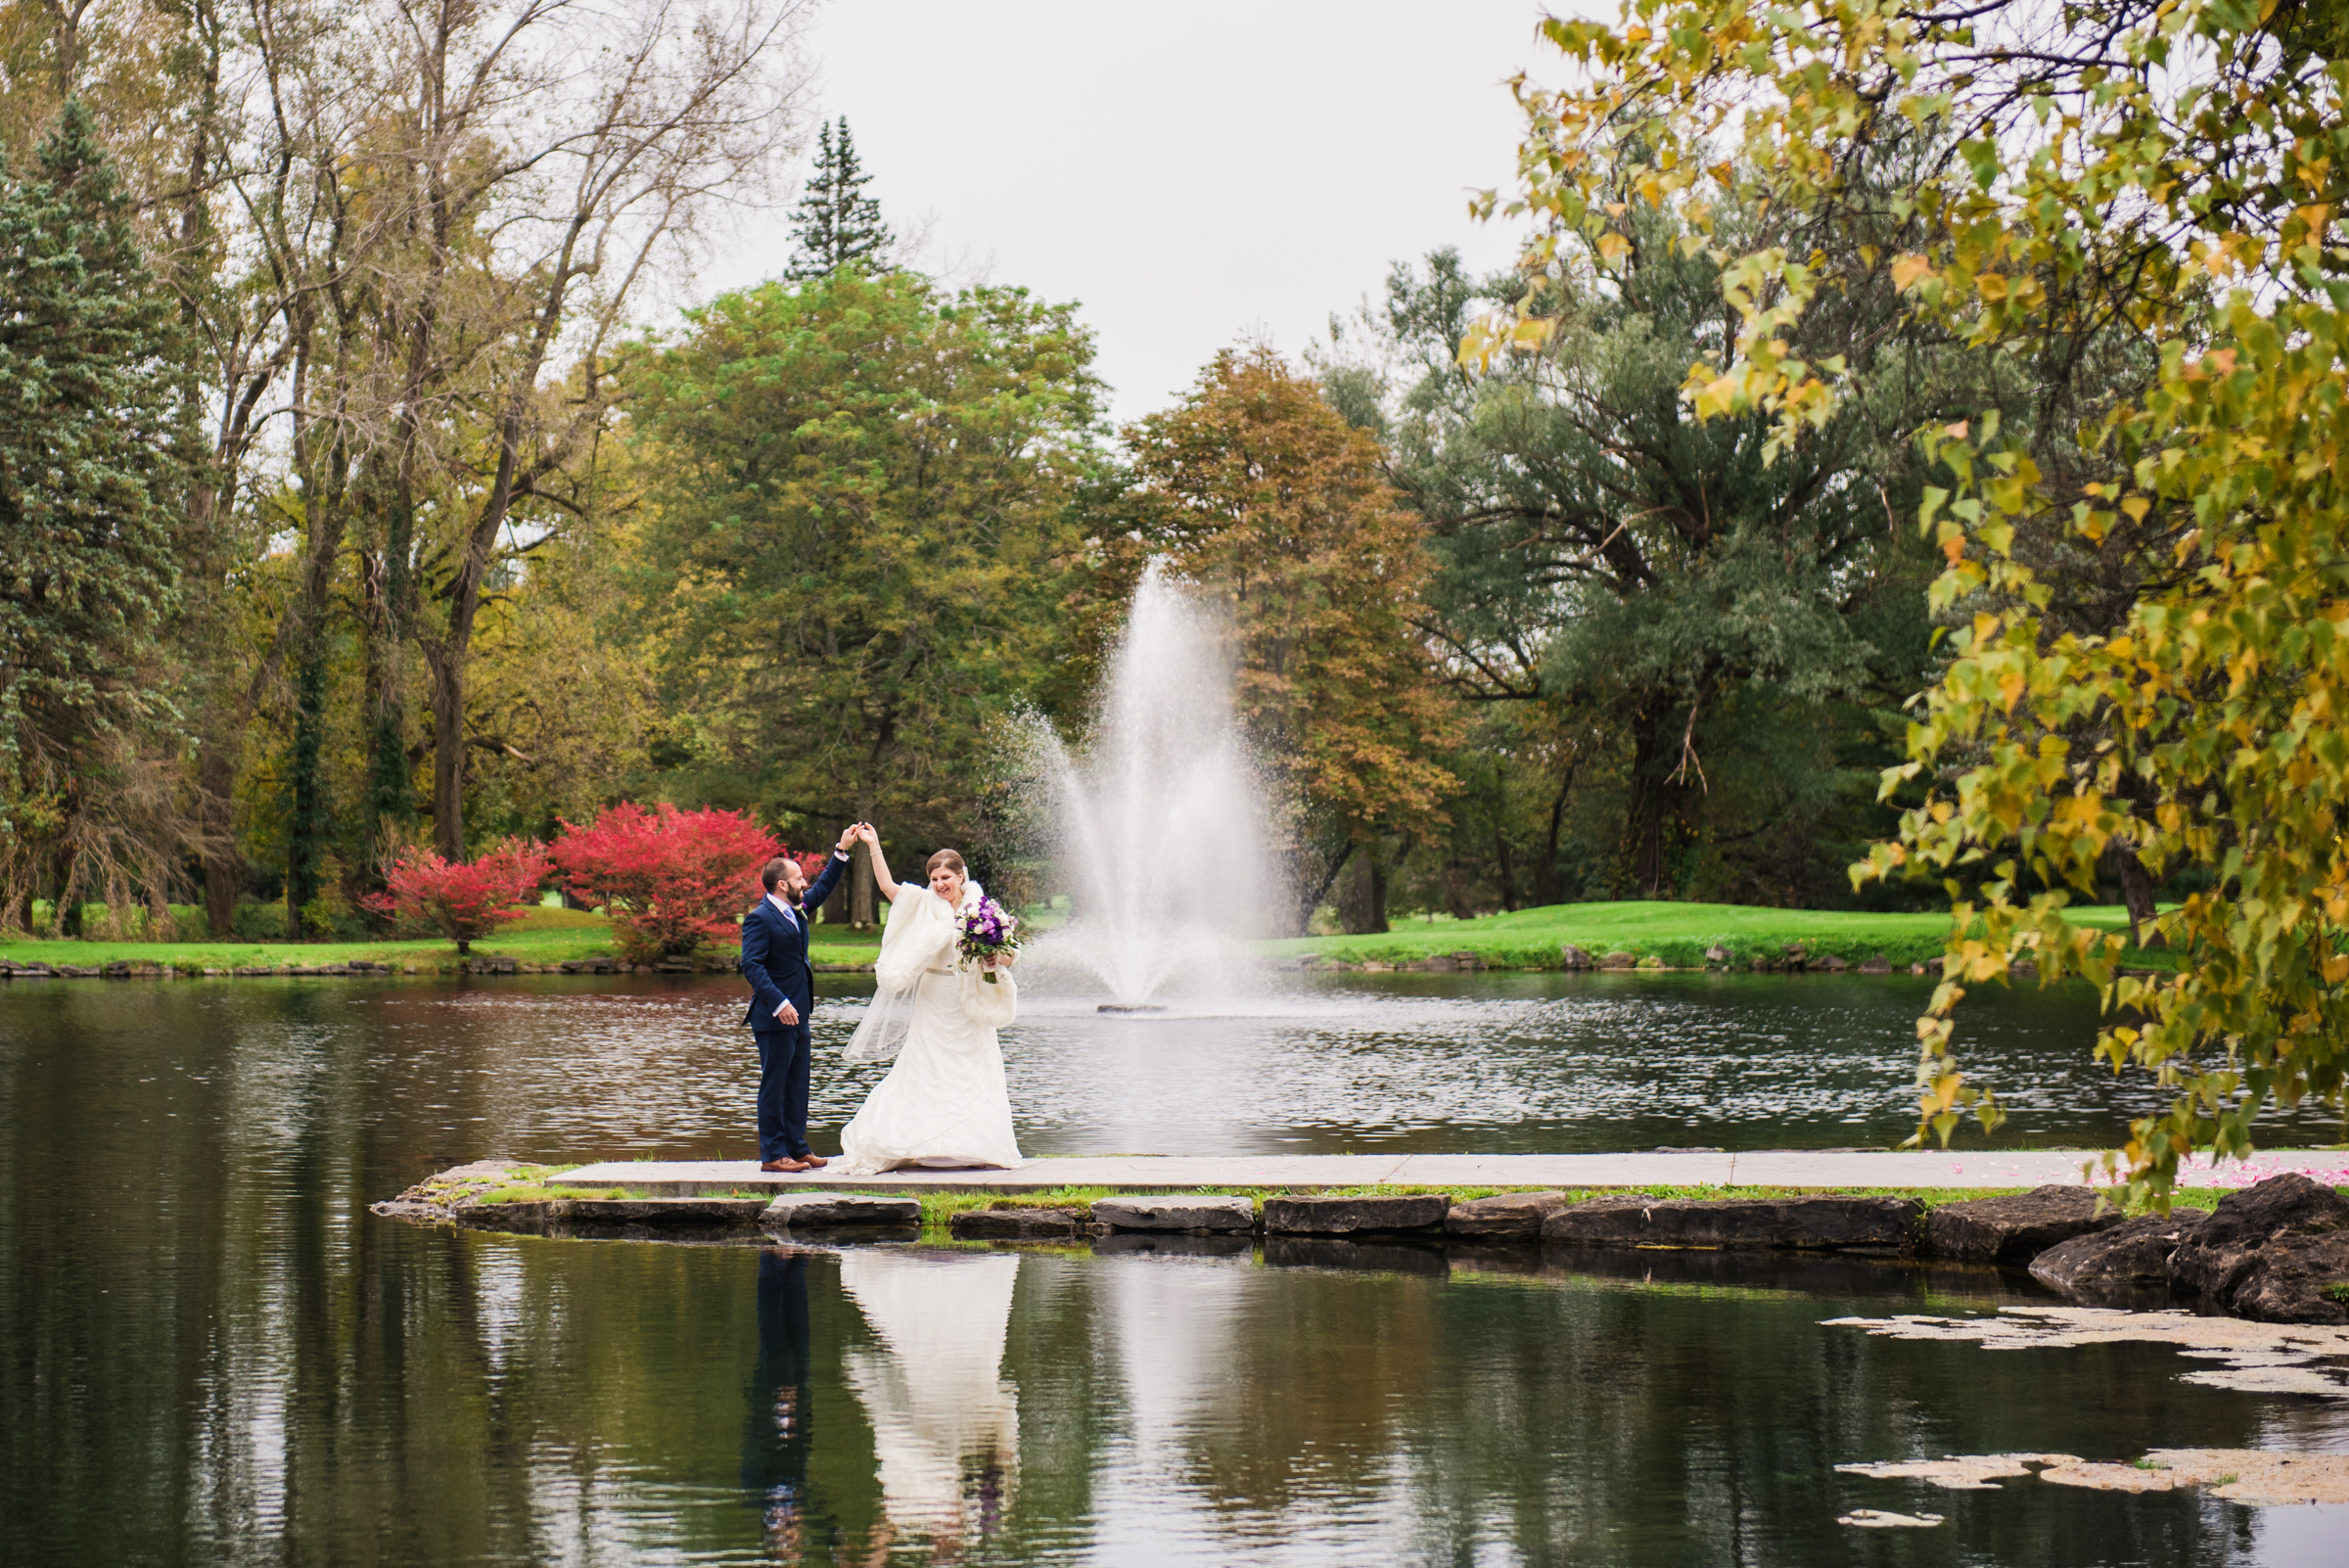 JILL_STUDIO_Wedding_JILL_STUDIO_Rochester_NY_Photographer_29-DSC_6029.jpg